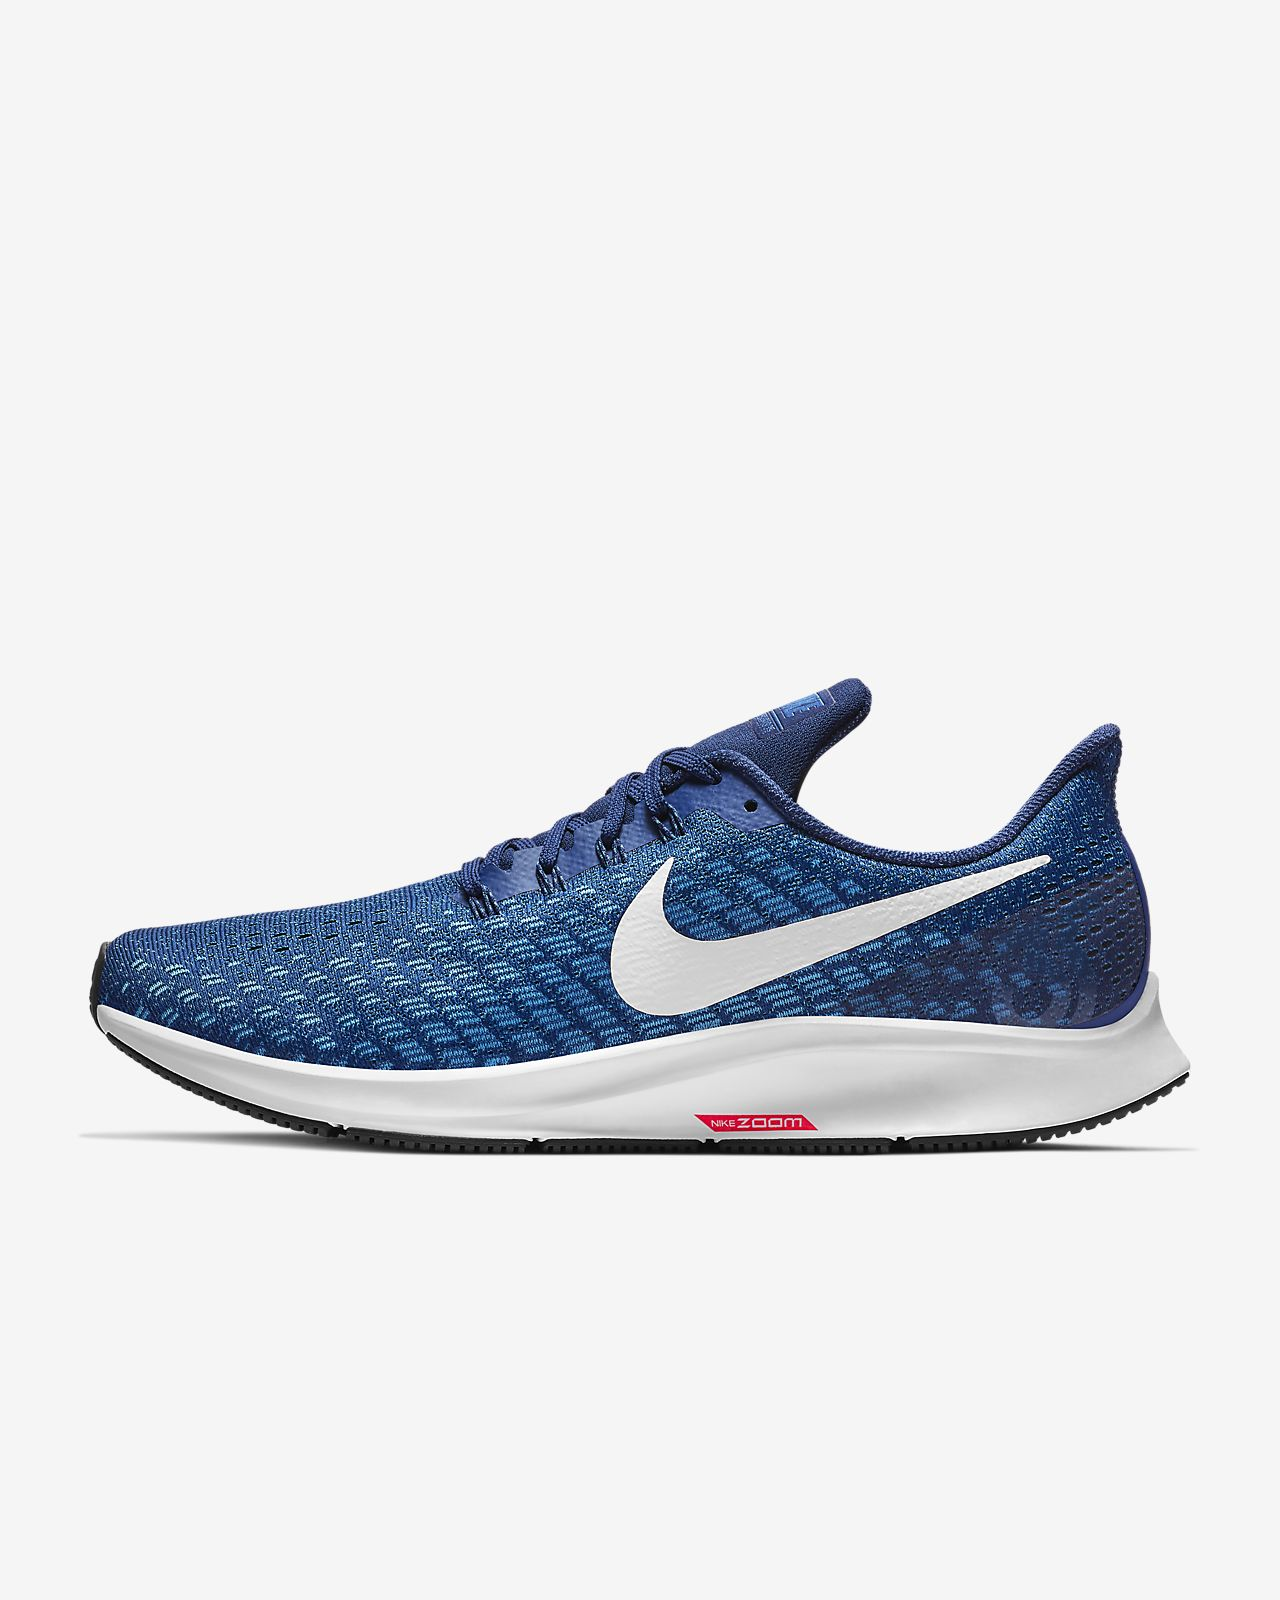 1e36d3e20350 Nike Air Zoom Pegasus 35 Men s Running Shoe. Nike.com VN